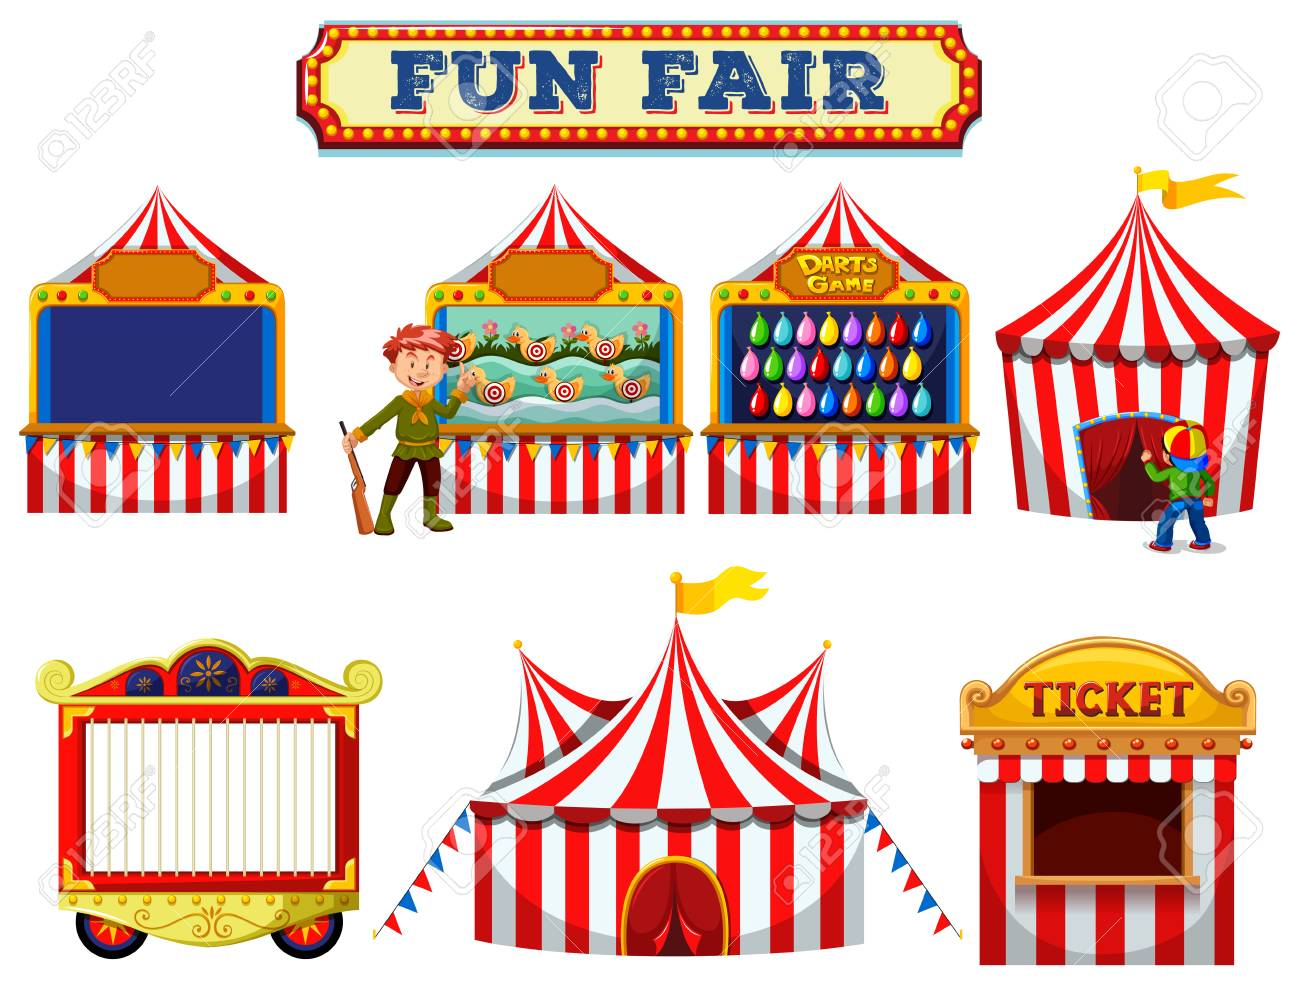 A Set of Fun Fair Tent illustration.